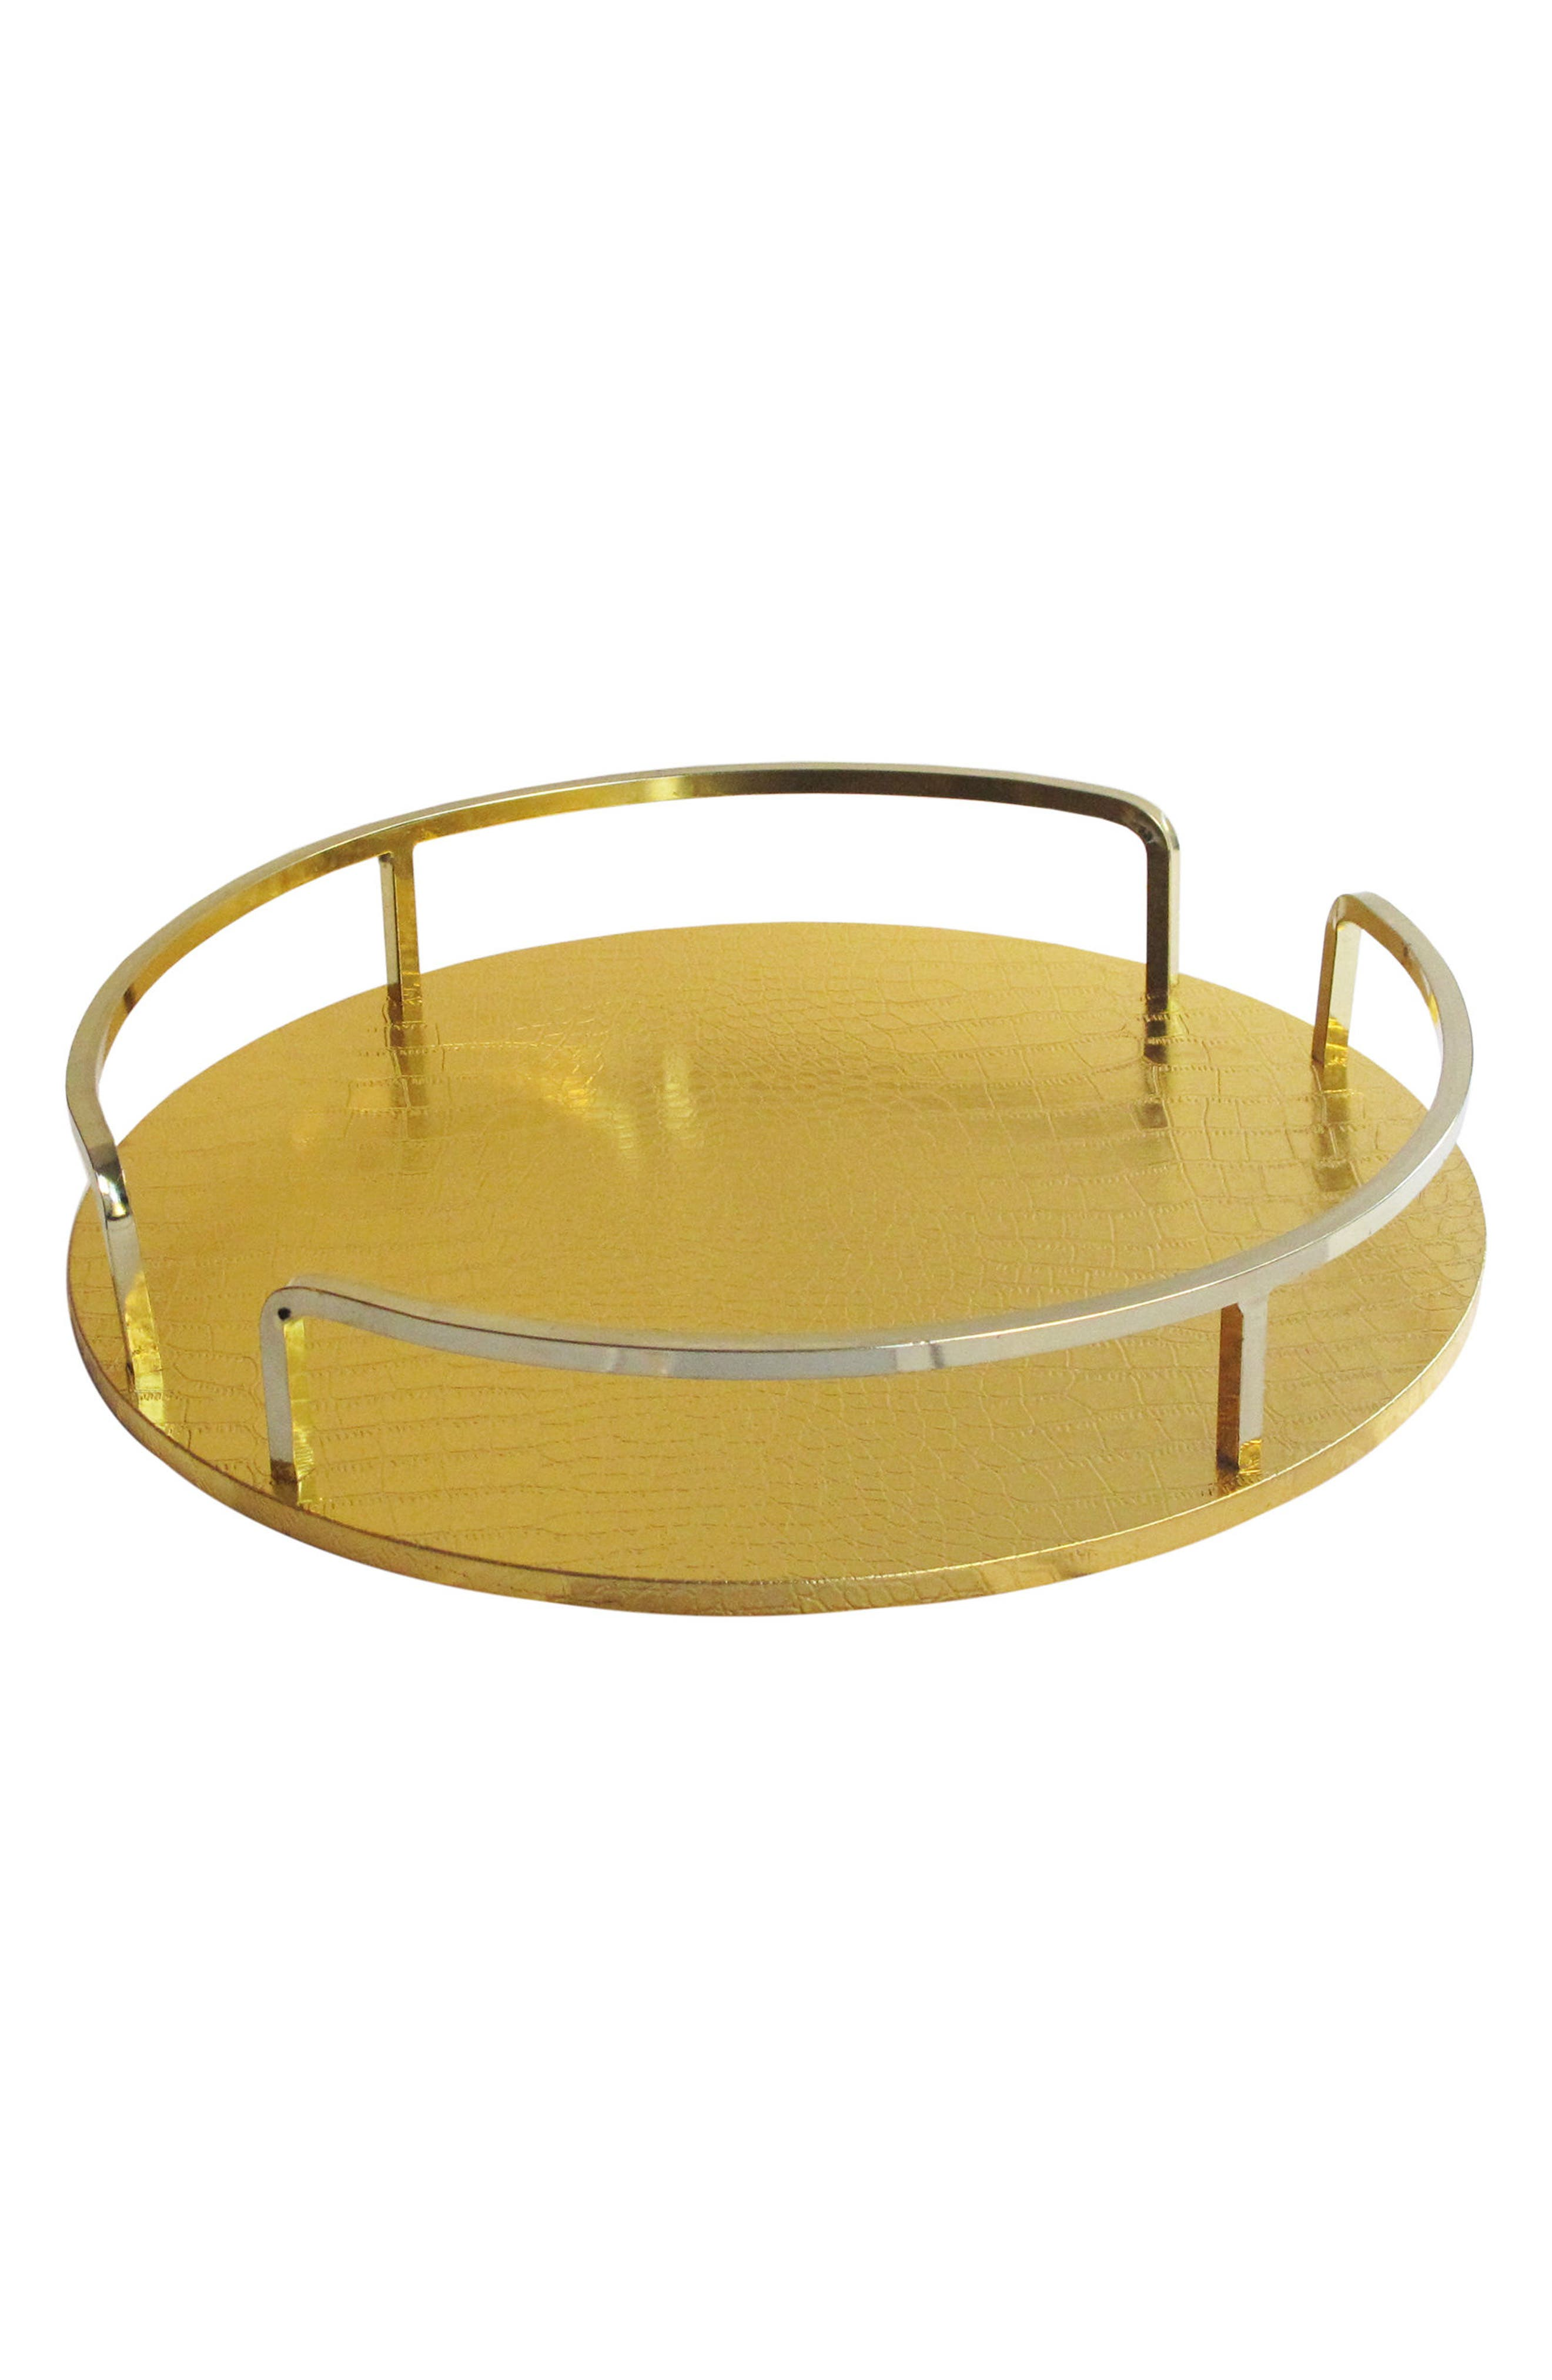 Croc Embossed Serving Tray,                             Main thumbnail 1, color,                             Gold